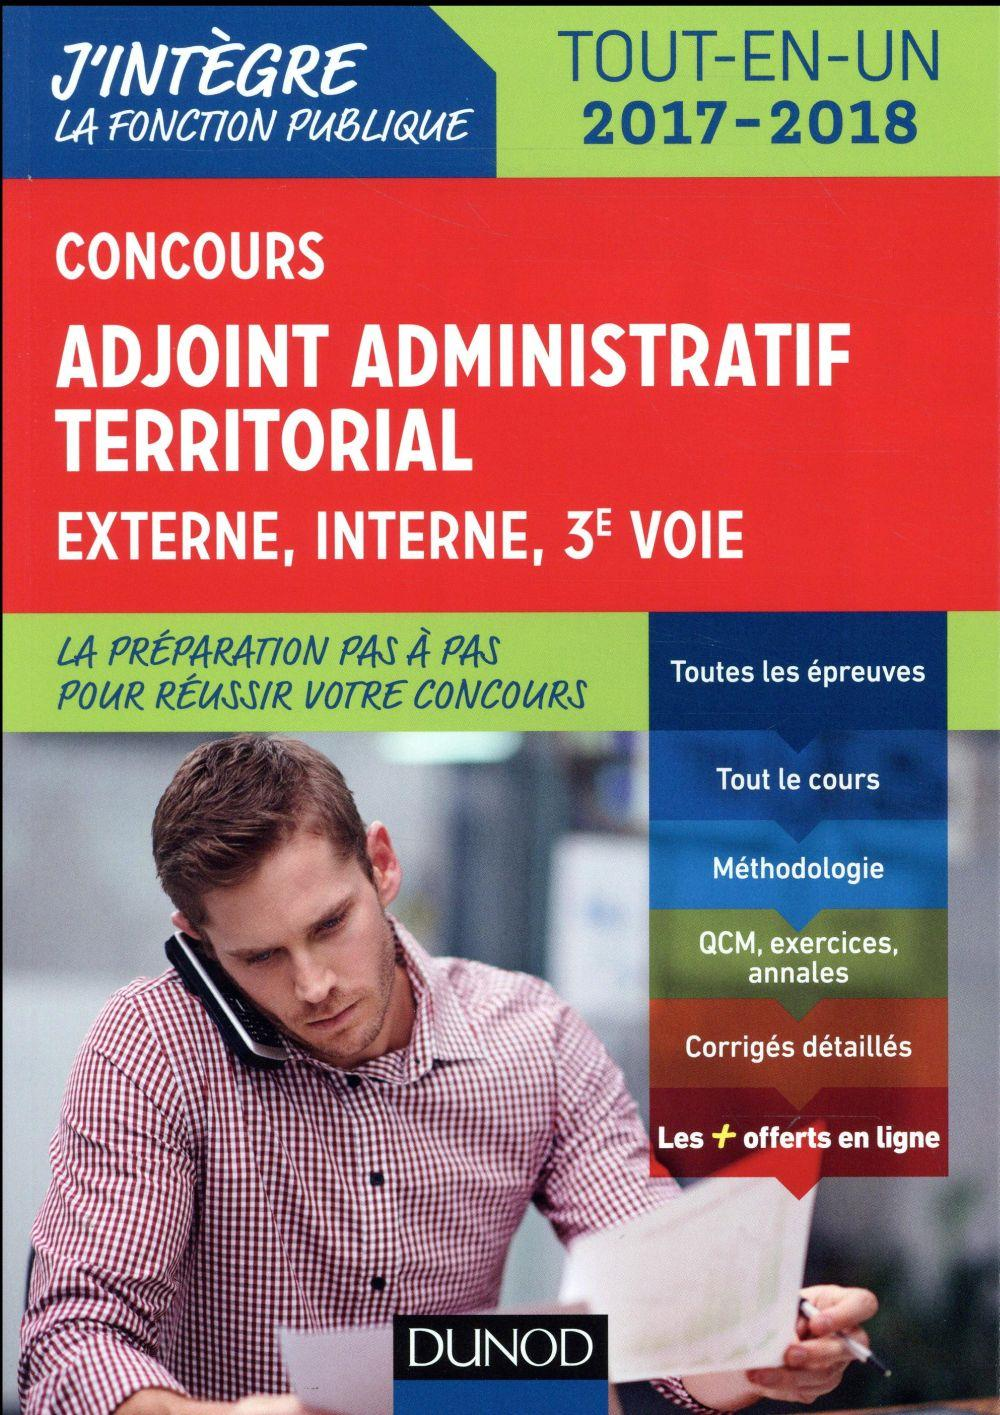 Concours adjoint administratif territorial (édition 2017/2018)  - Odile Meyer  - Collectif